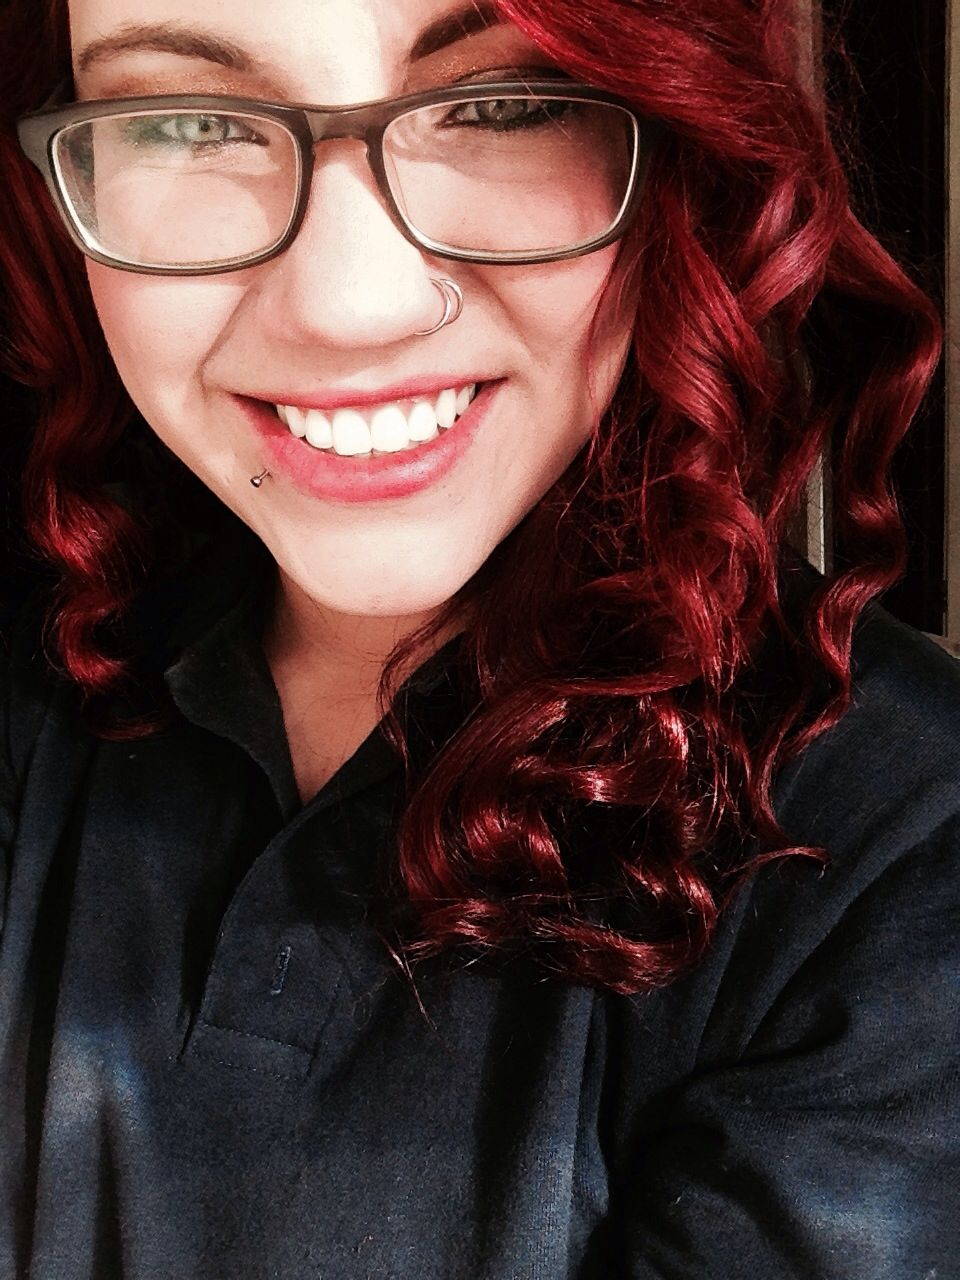 Double nose piercing  Lip ring Double nose piercing Sears Red hair  ink  Pinterest